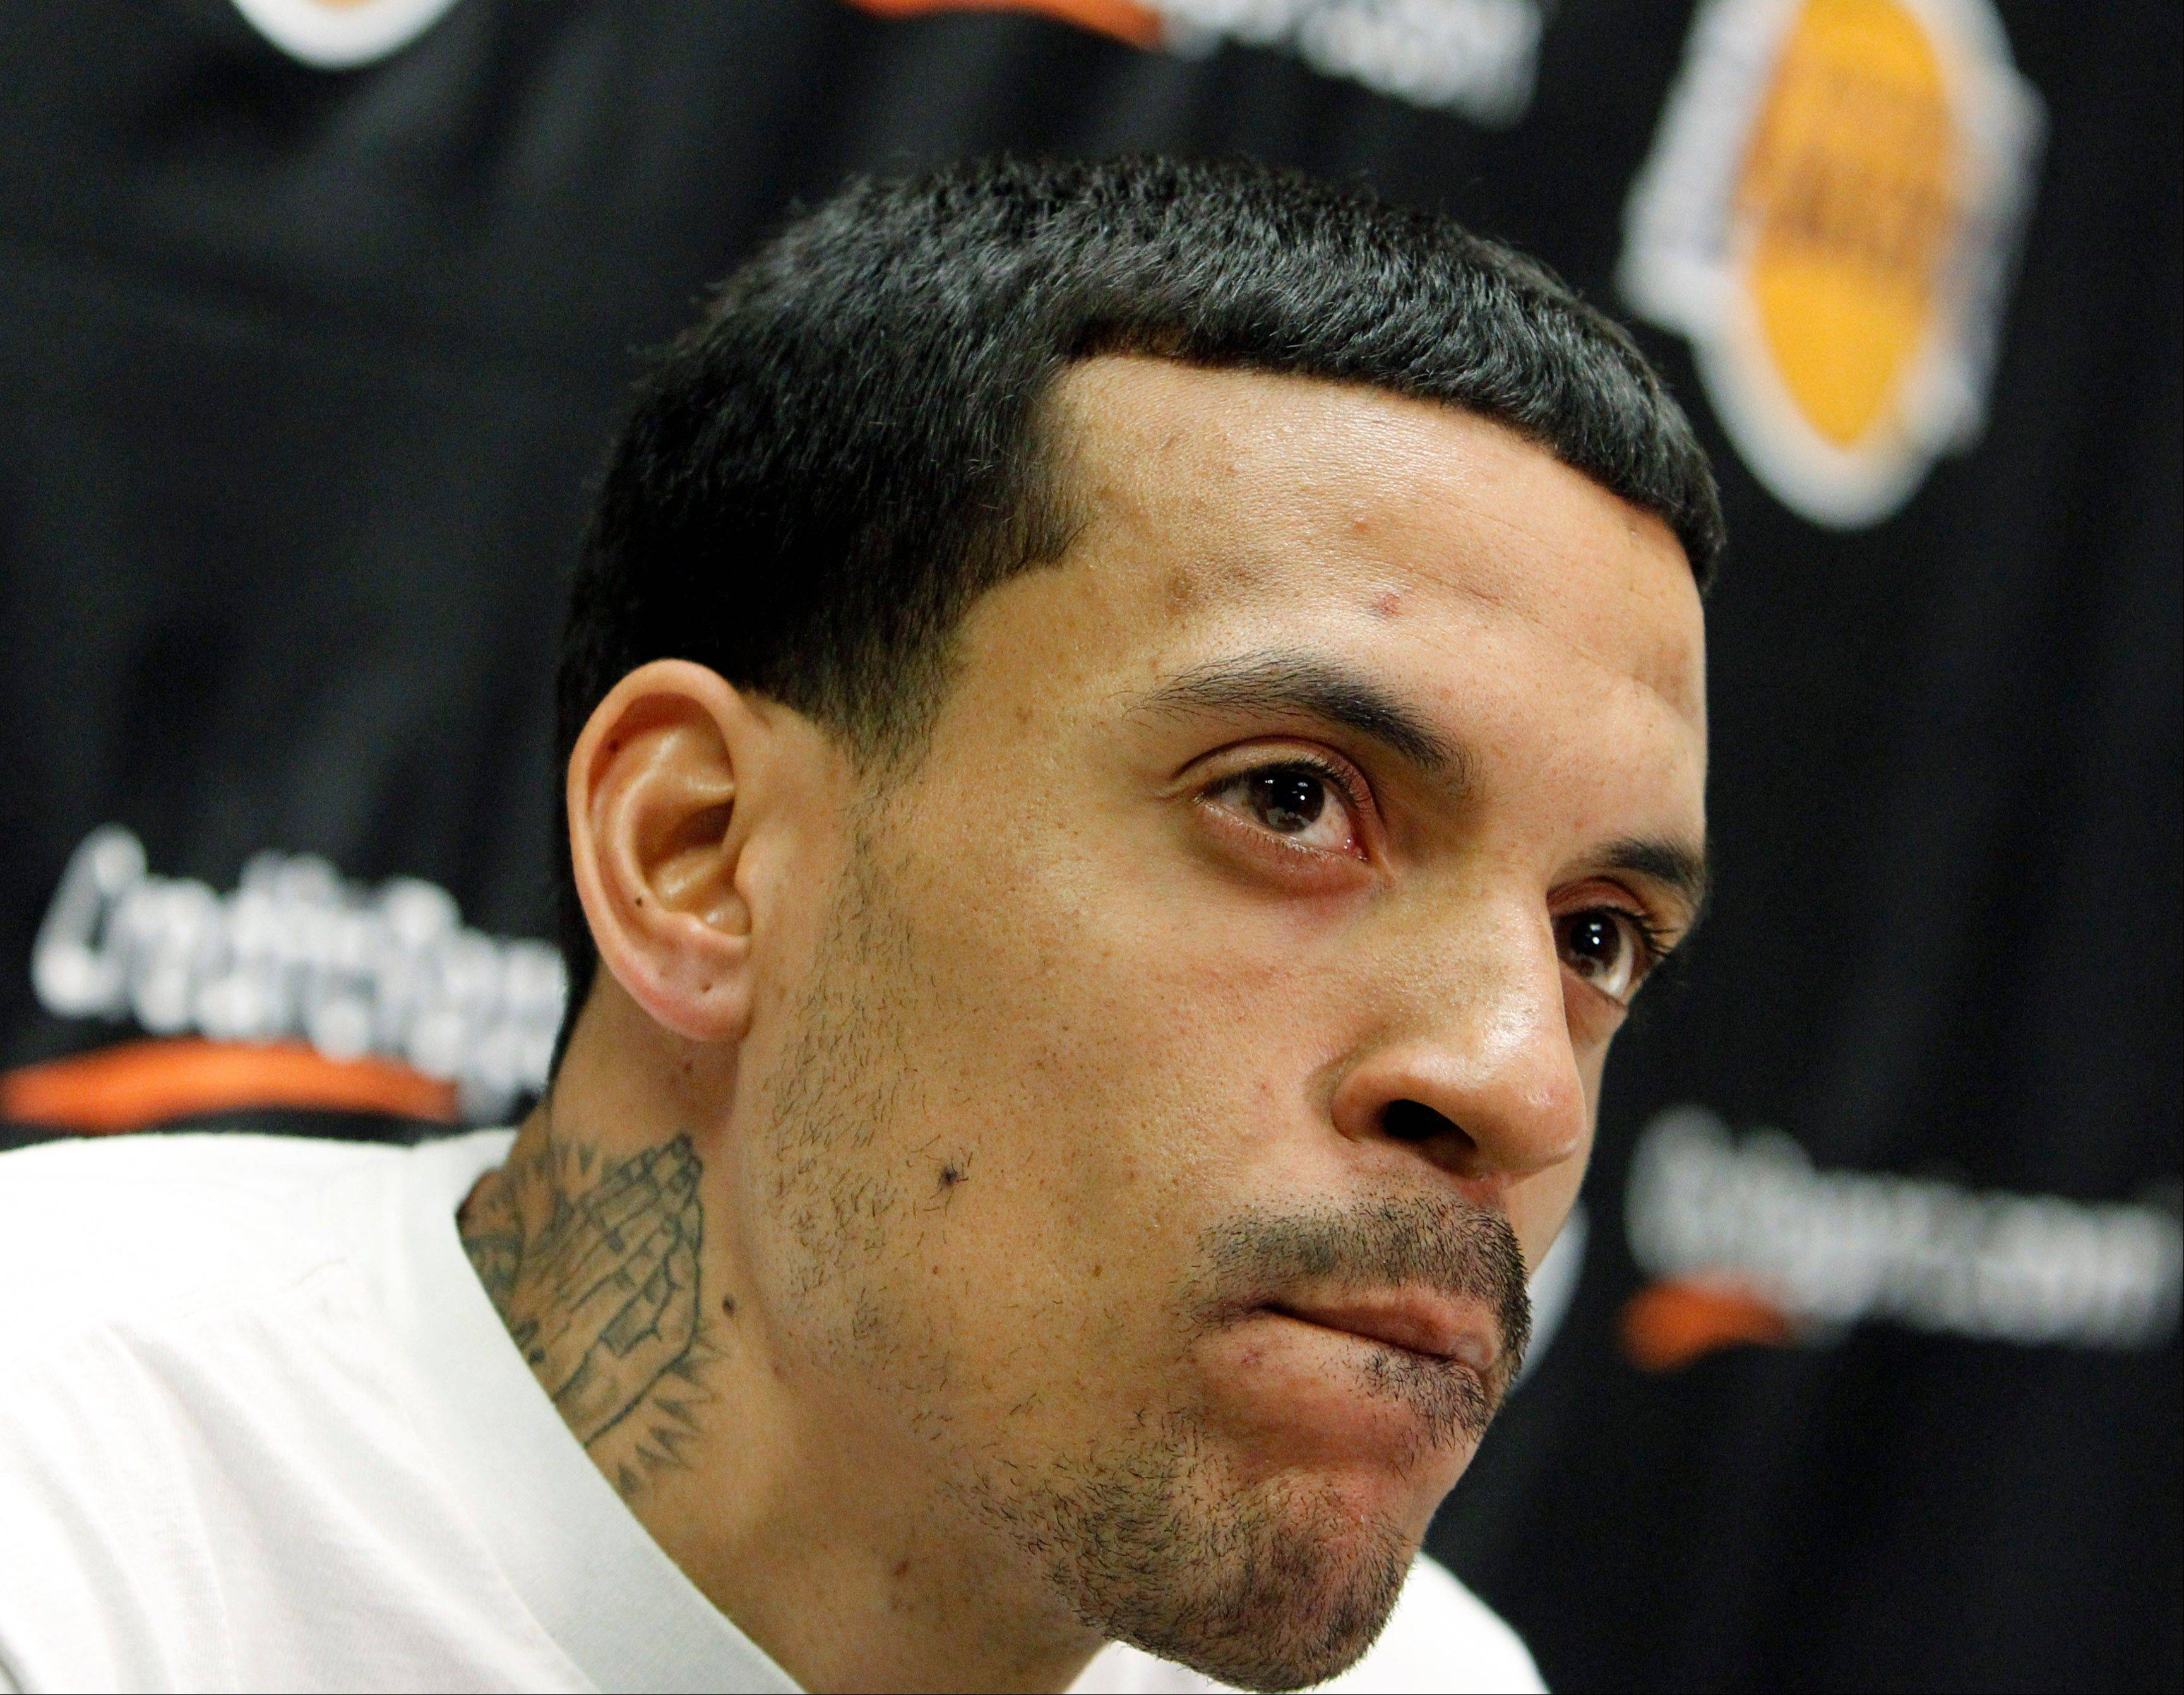 Los Angeles Lakers forward Matt Barnes has been released from jail after being arrested on suspicion of threatening a police officer who stopped him for a traffic warrant. Manhattan Beach police Sgt. Paul Ford says Barnes posted $51,000 bail and was released shortly before 11:30 p.m. Monday, July 30, 2012, some three hours after his arrest.